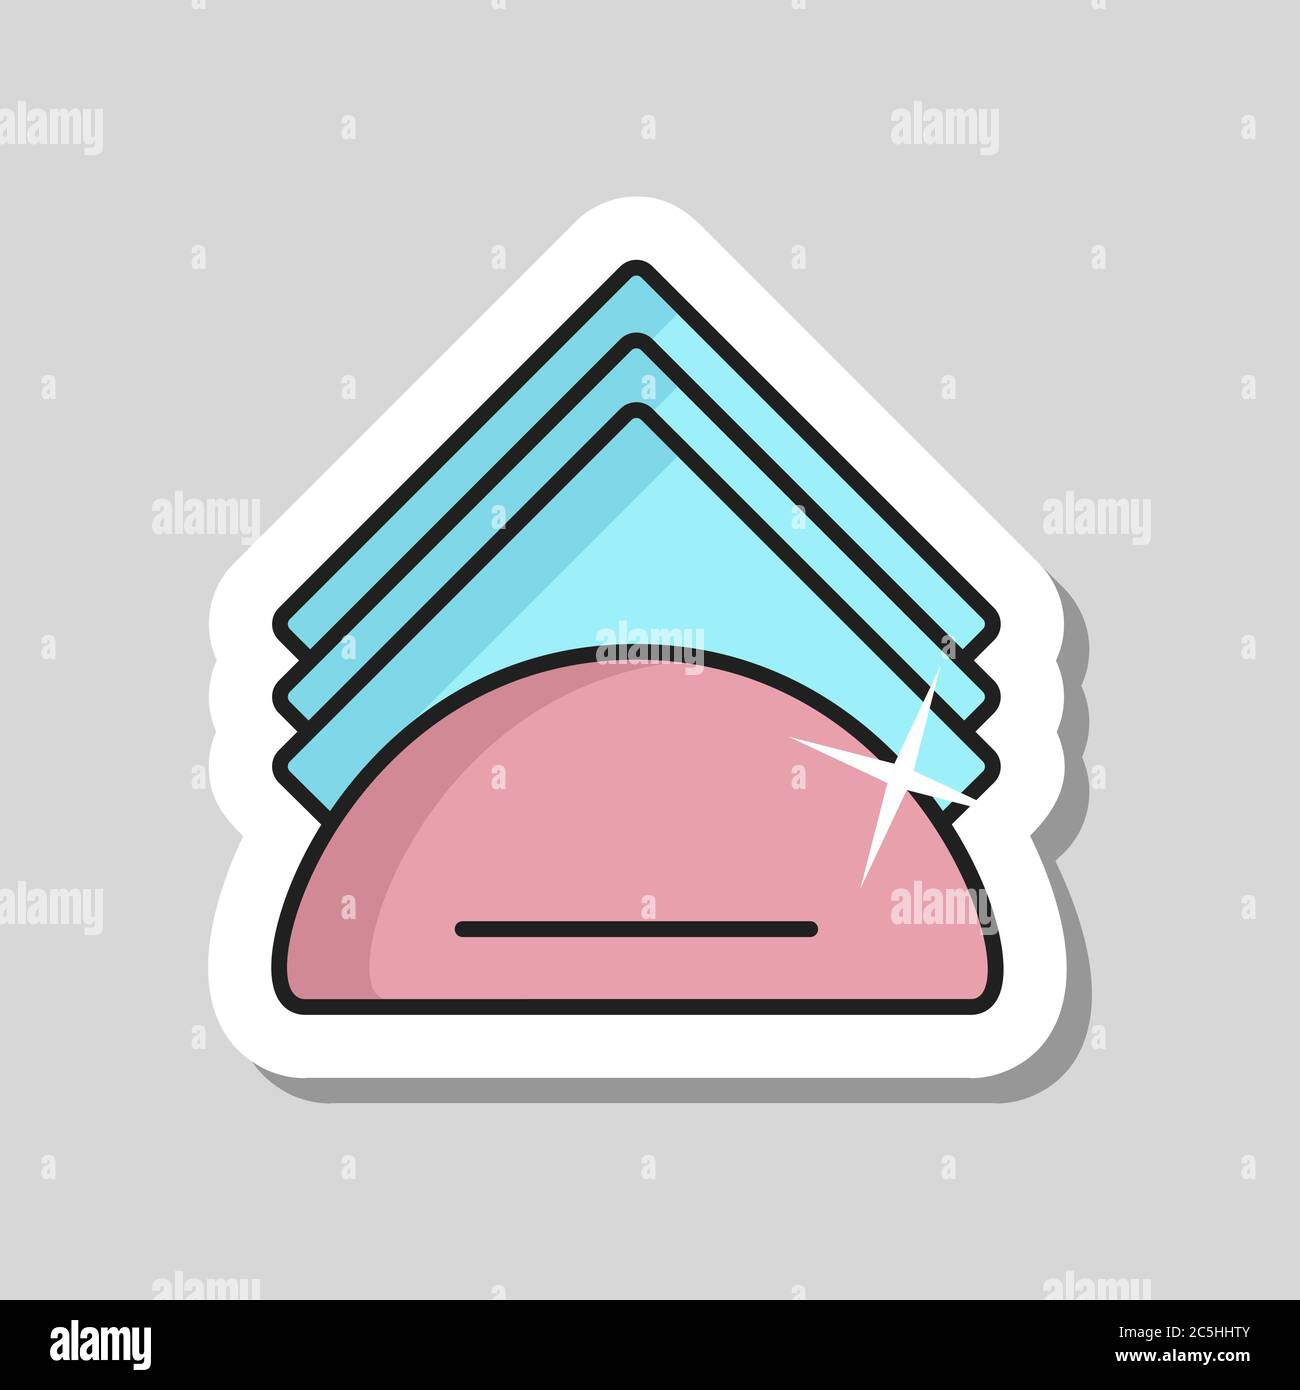 Napkins And Napkin Holder Vector Icon Kitchen Appliance Graph Symbol For Cooking Web Site Design Logo App Ui Stock Vector Image Art Alamy